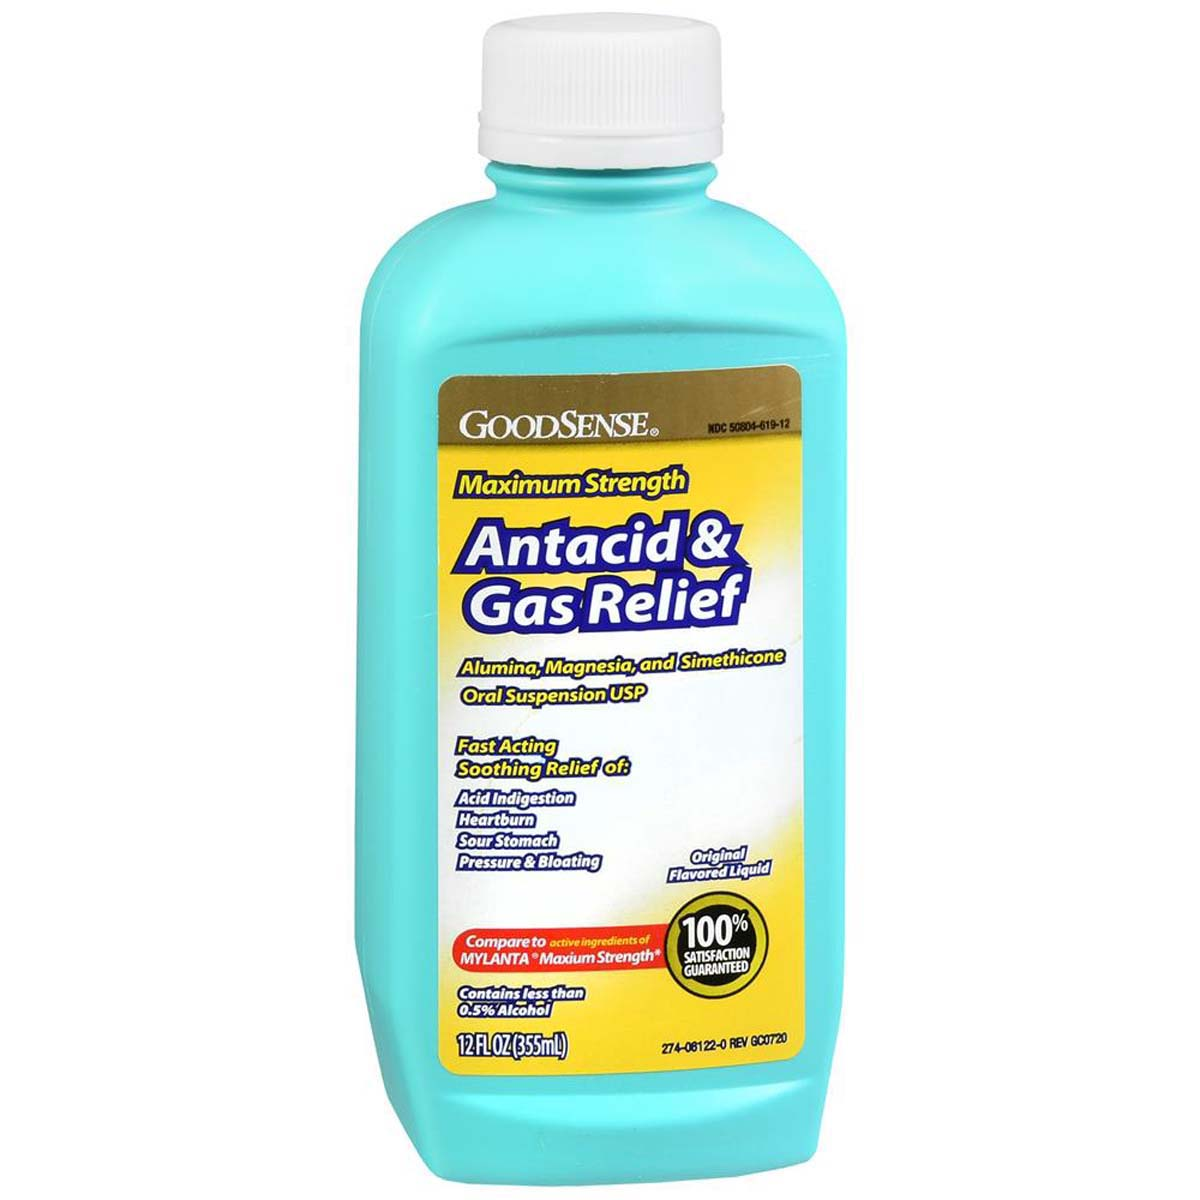 Mylanta Comparable Fast Acting Liquid Antacid 12 FL OZ